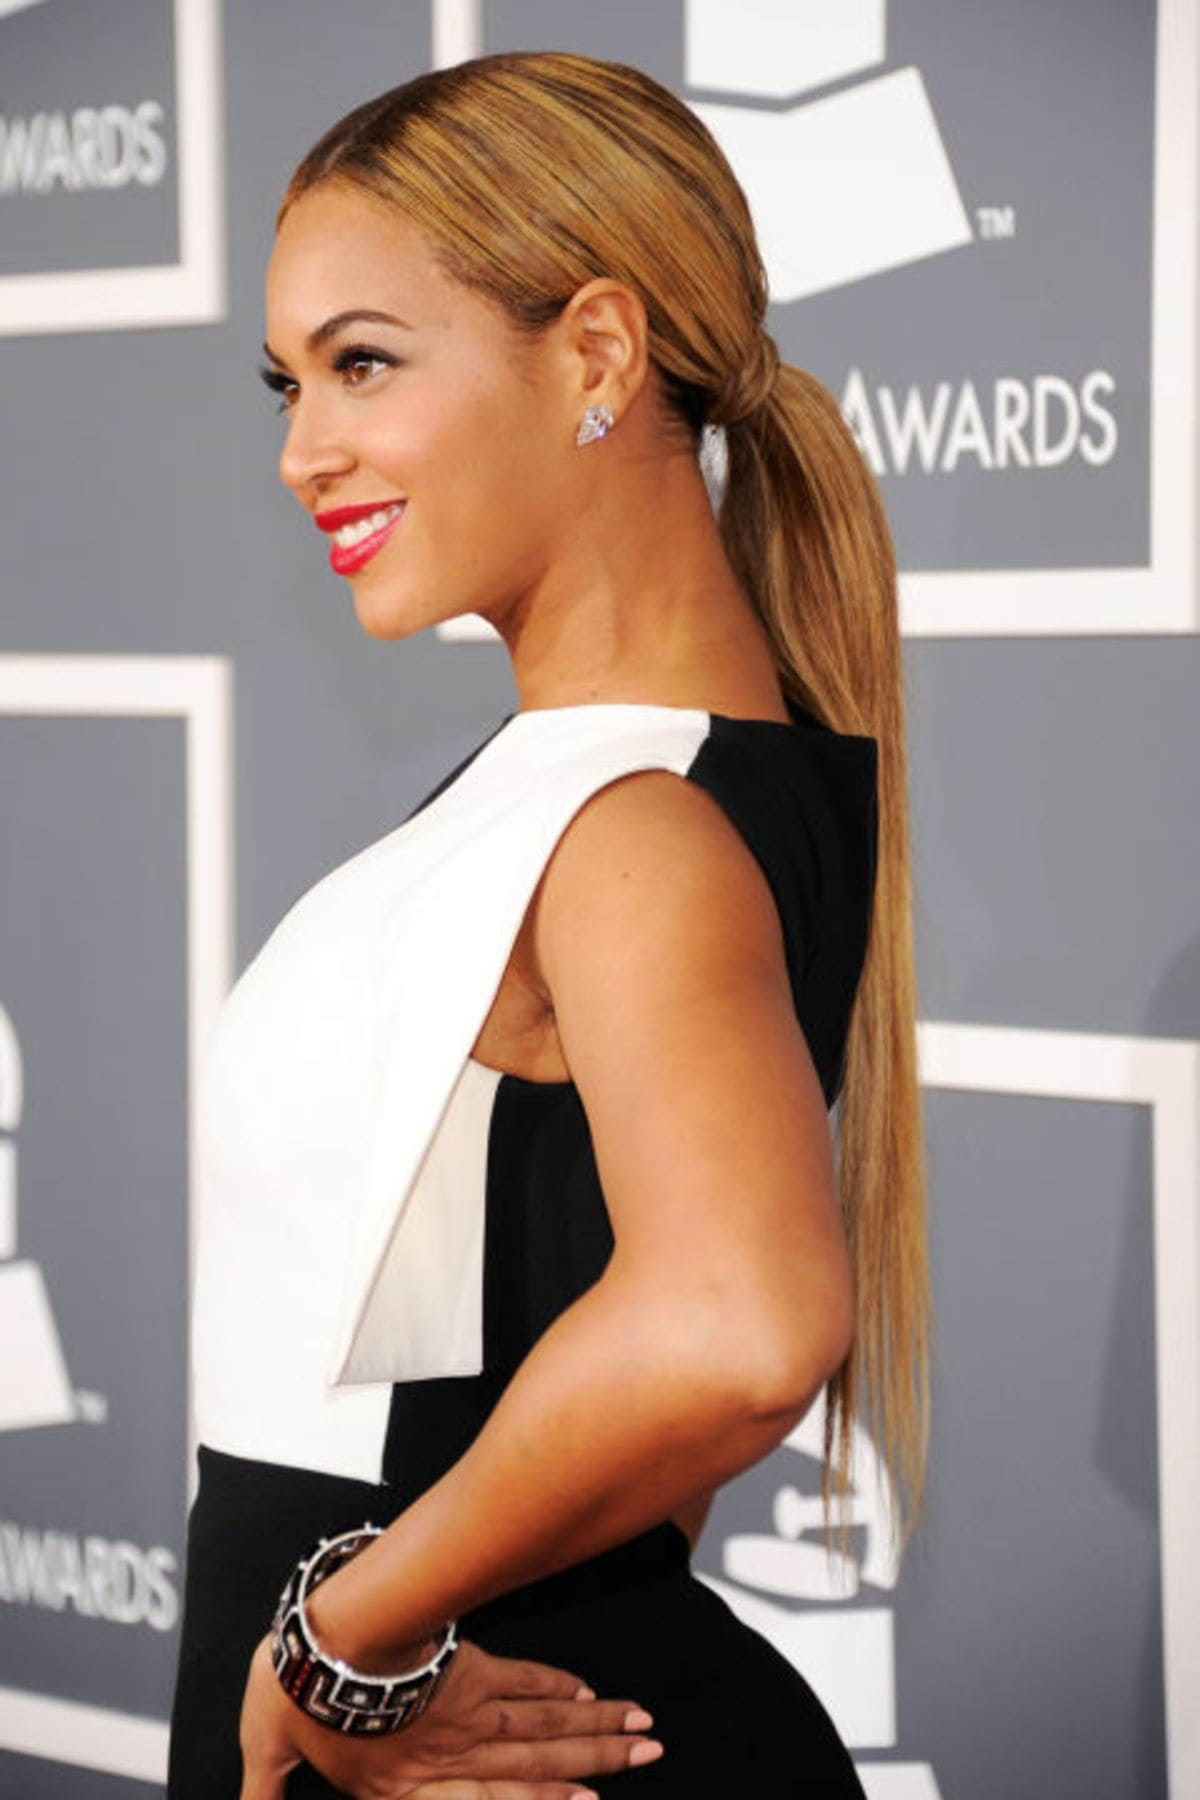 54bd0fa57f120_-_hbz-the-list-ponytails-04-beyonce